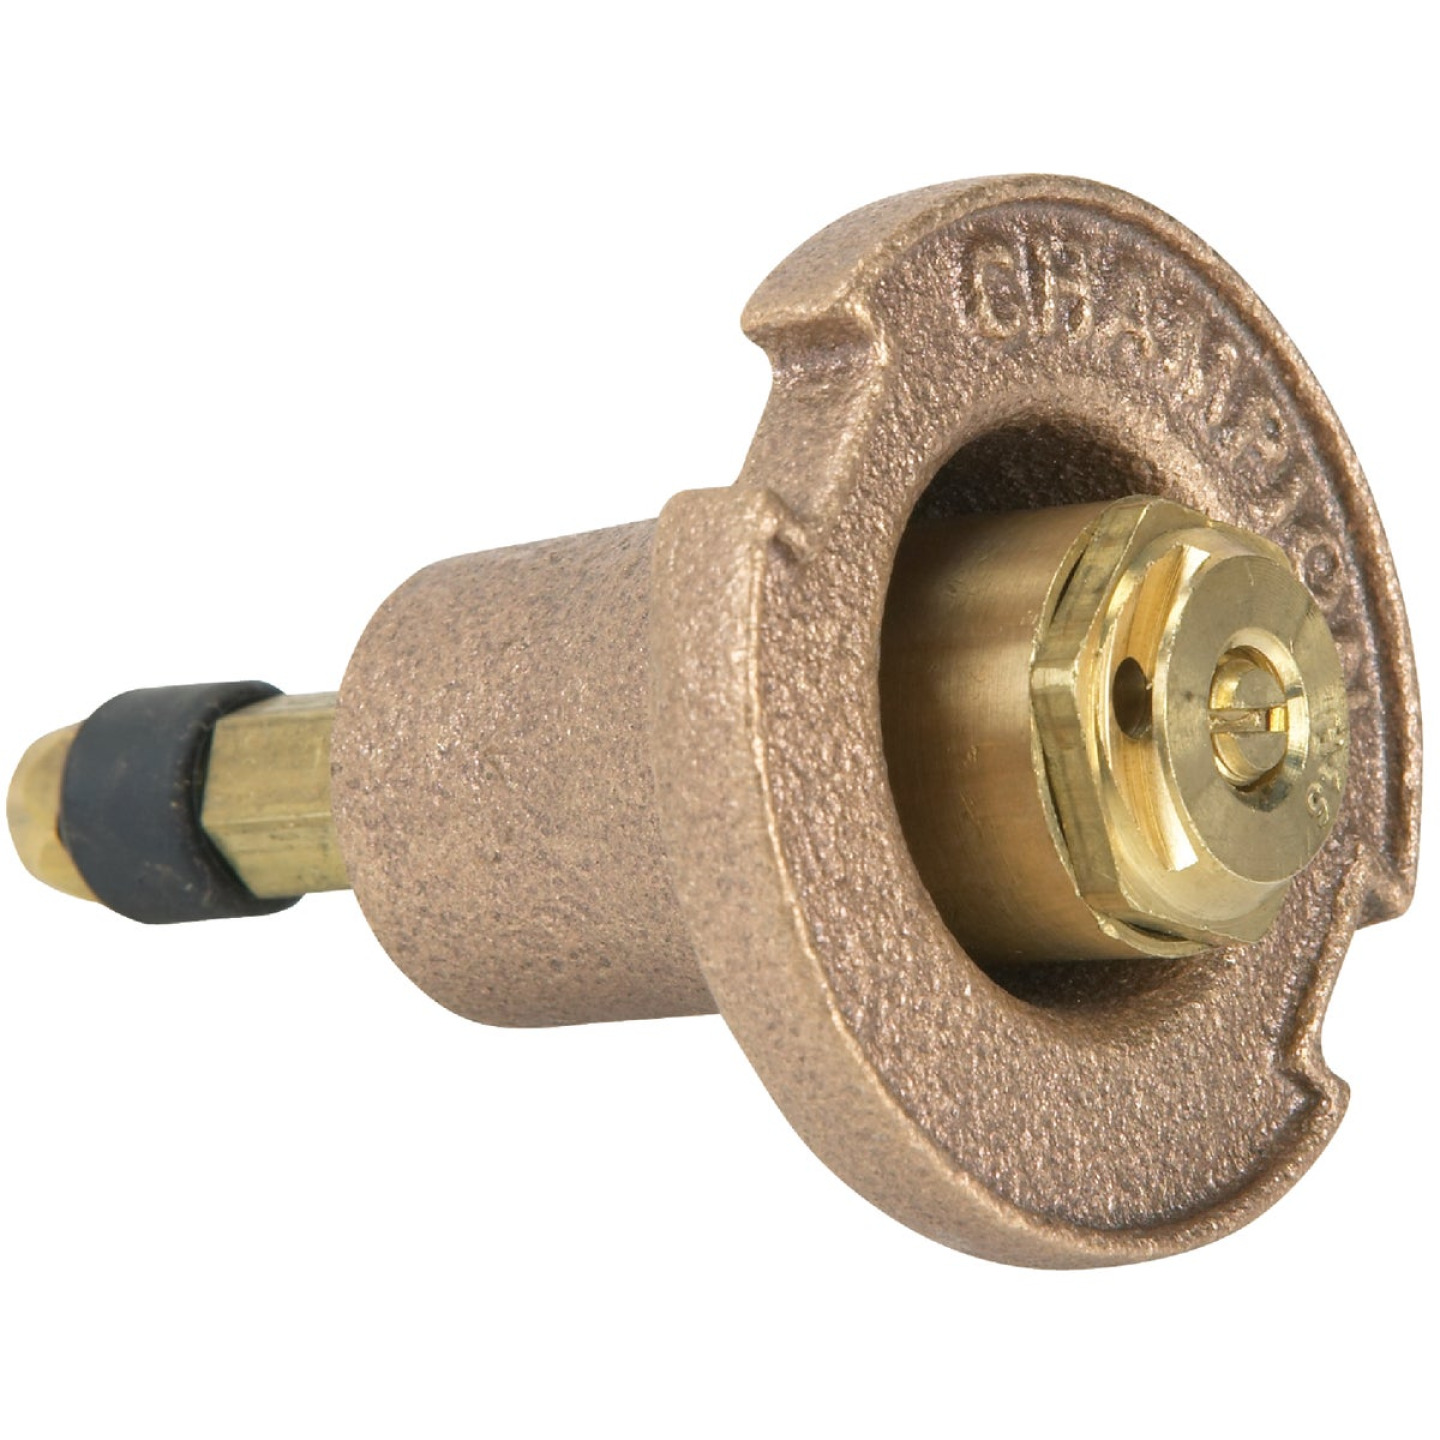 Champion 1.25 In. Half Circle Brass Pop-Up Sprinkler with Brass Nozzle Image 1